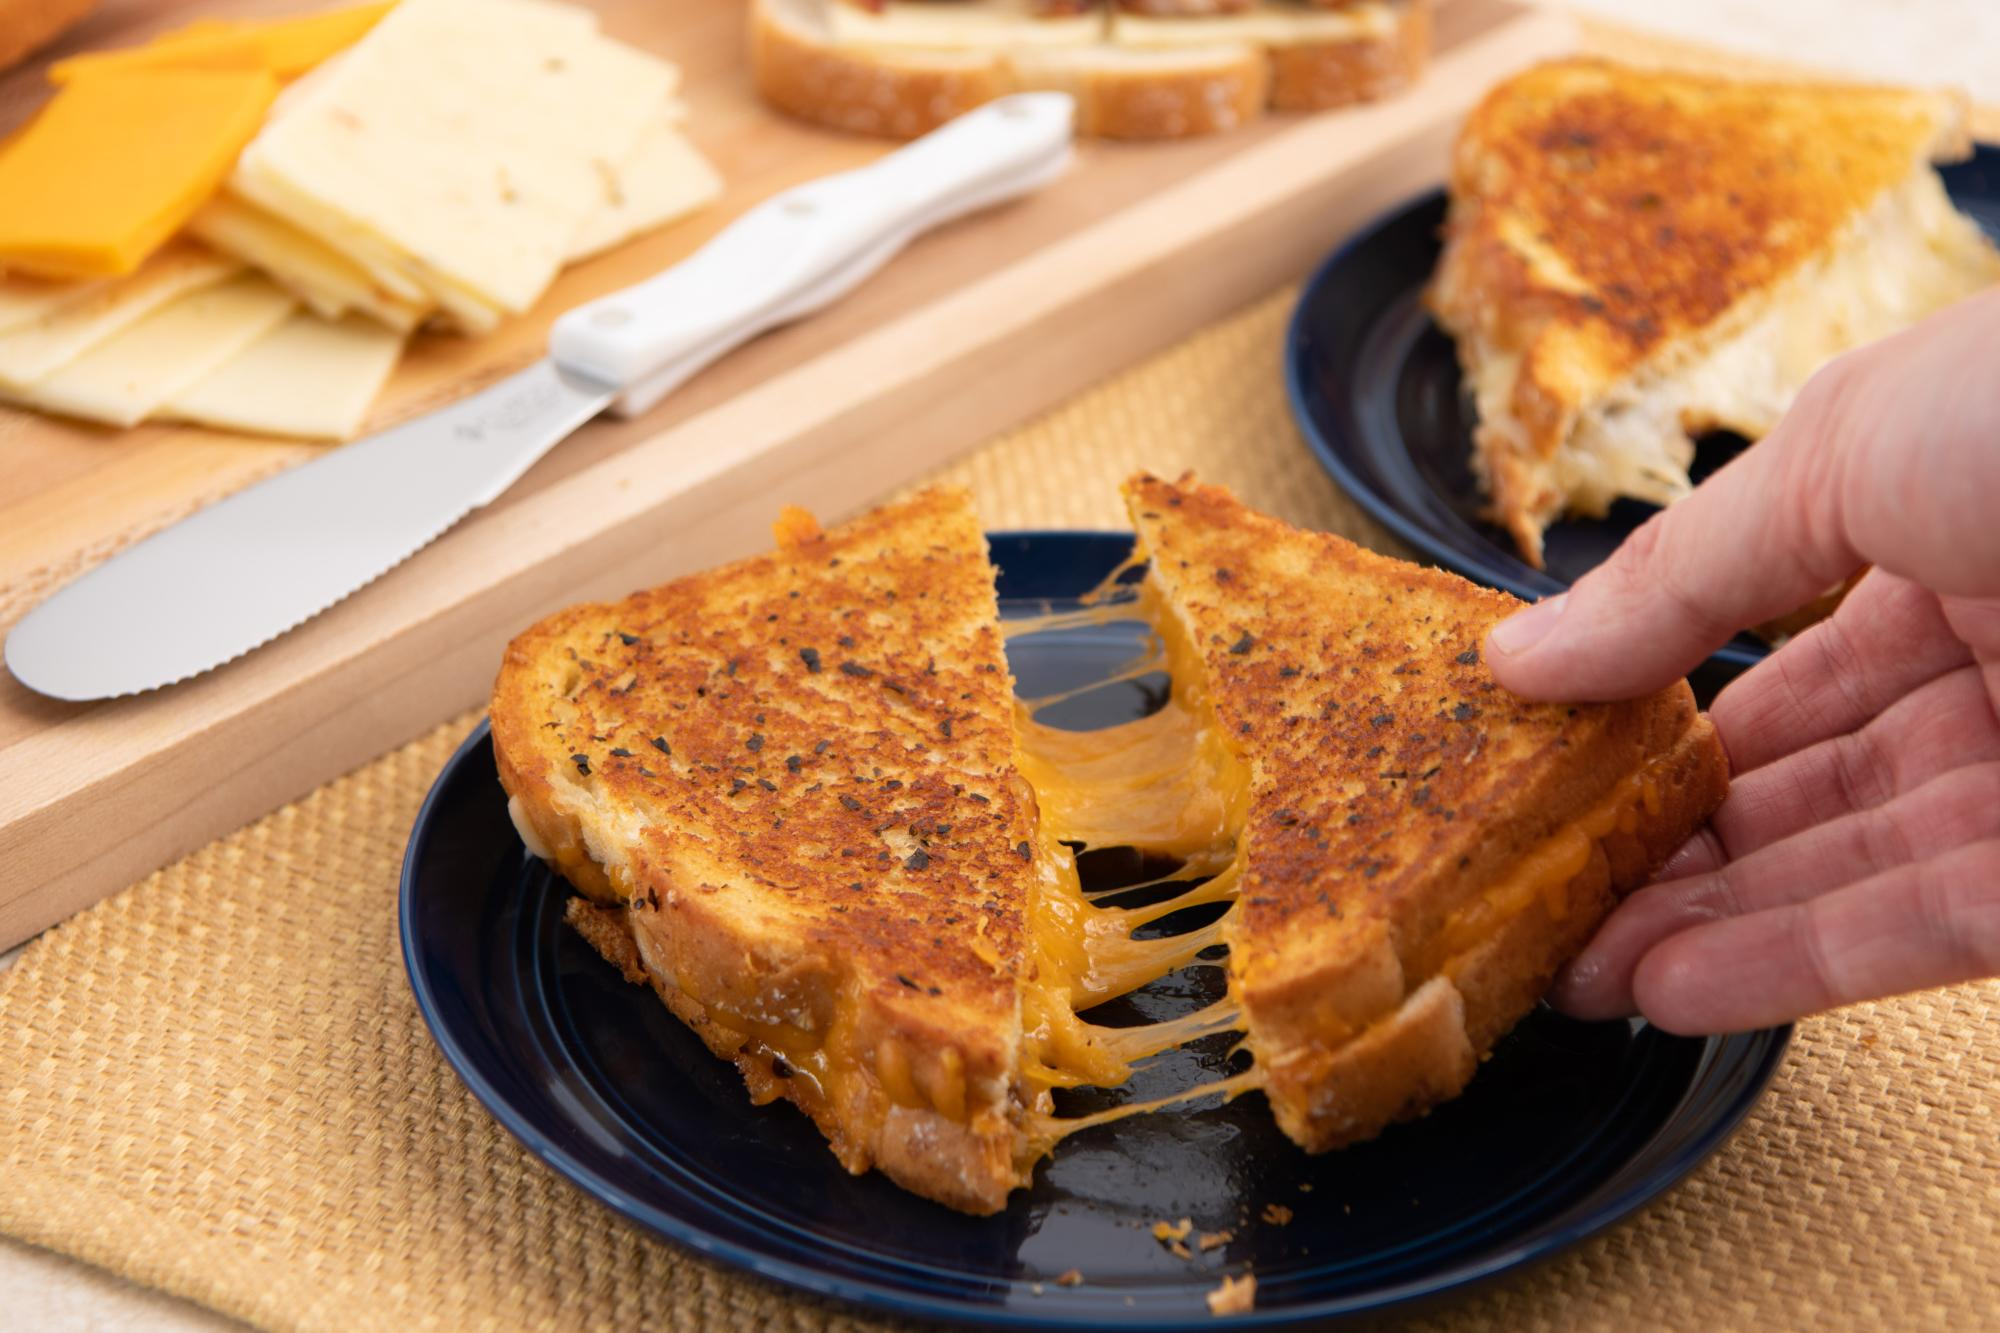 Grilled Cheese With Barbecue Meat